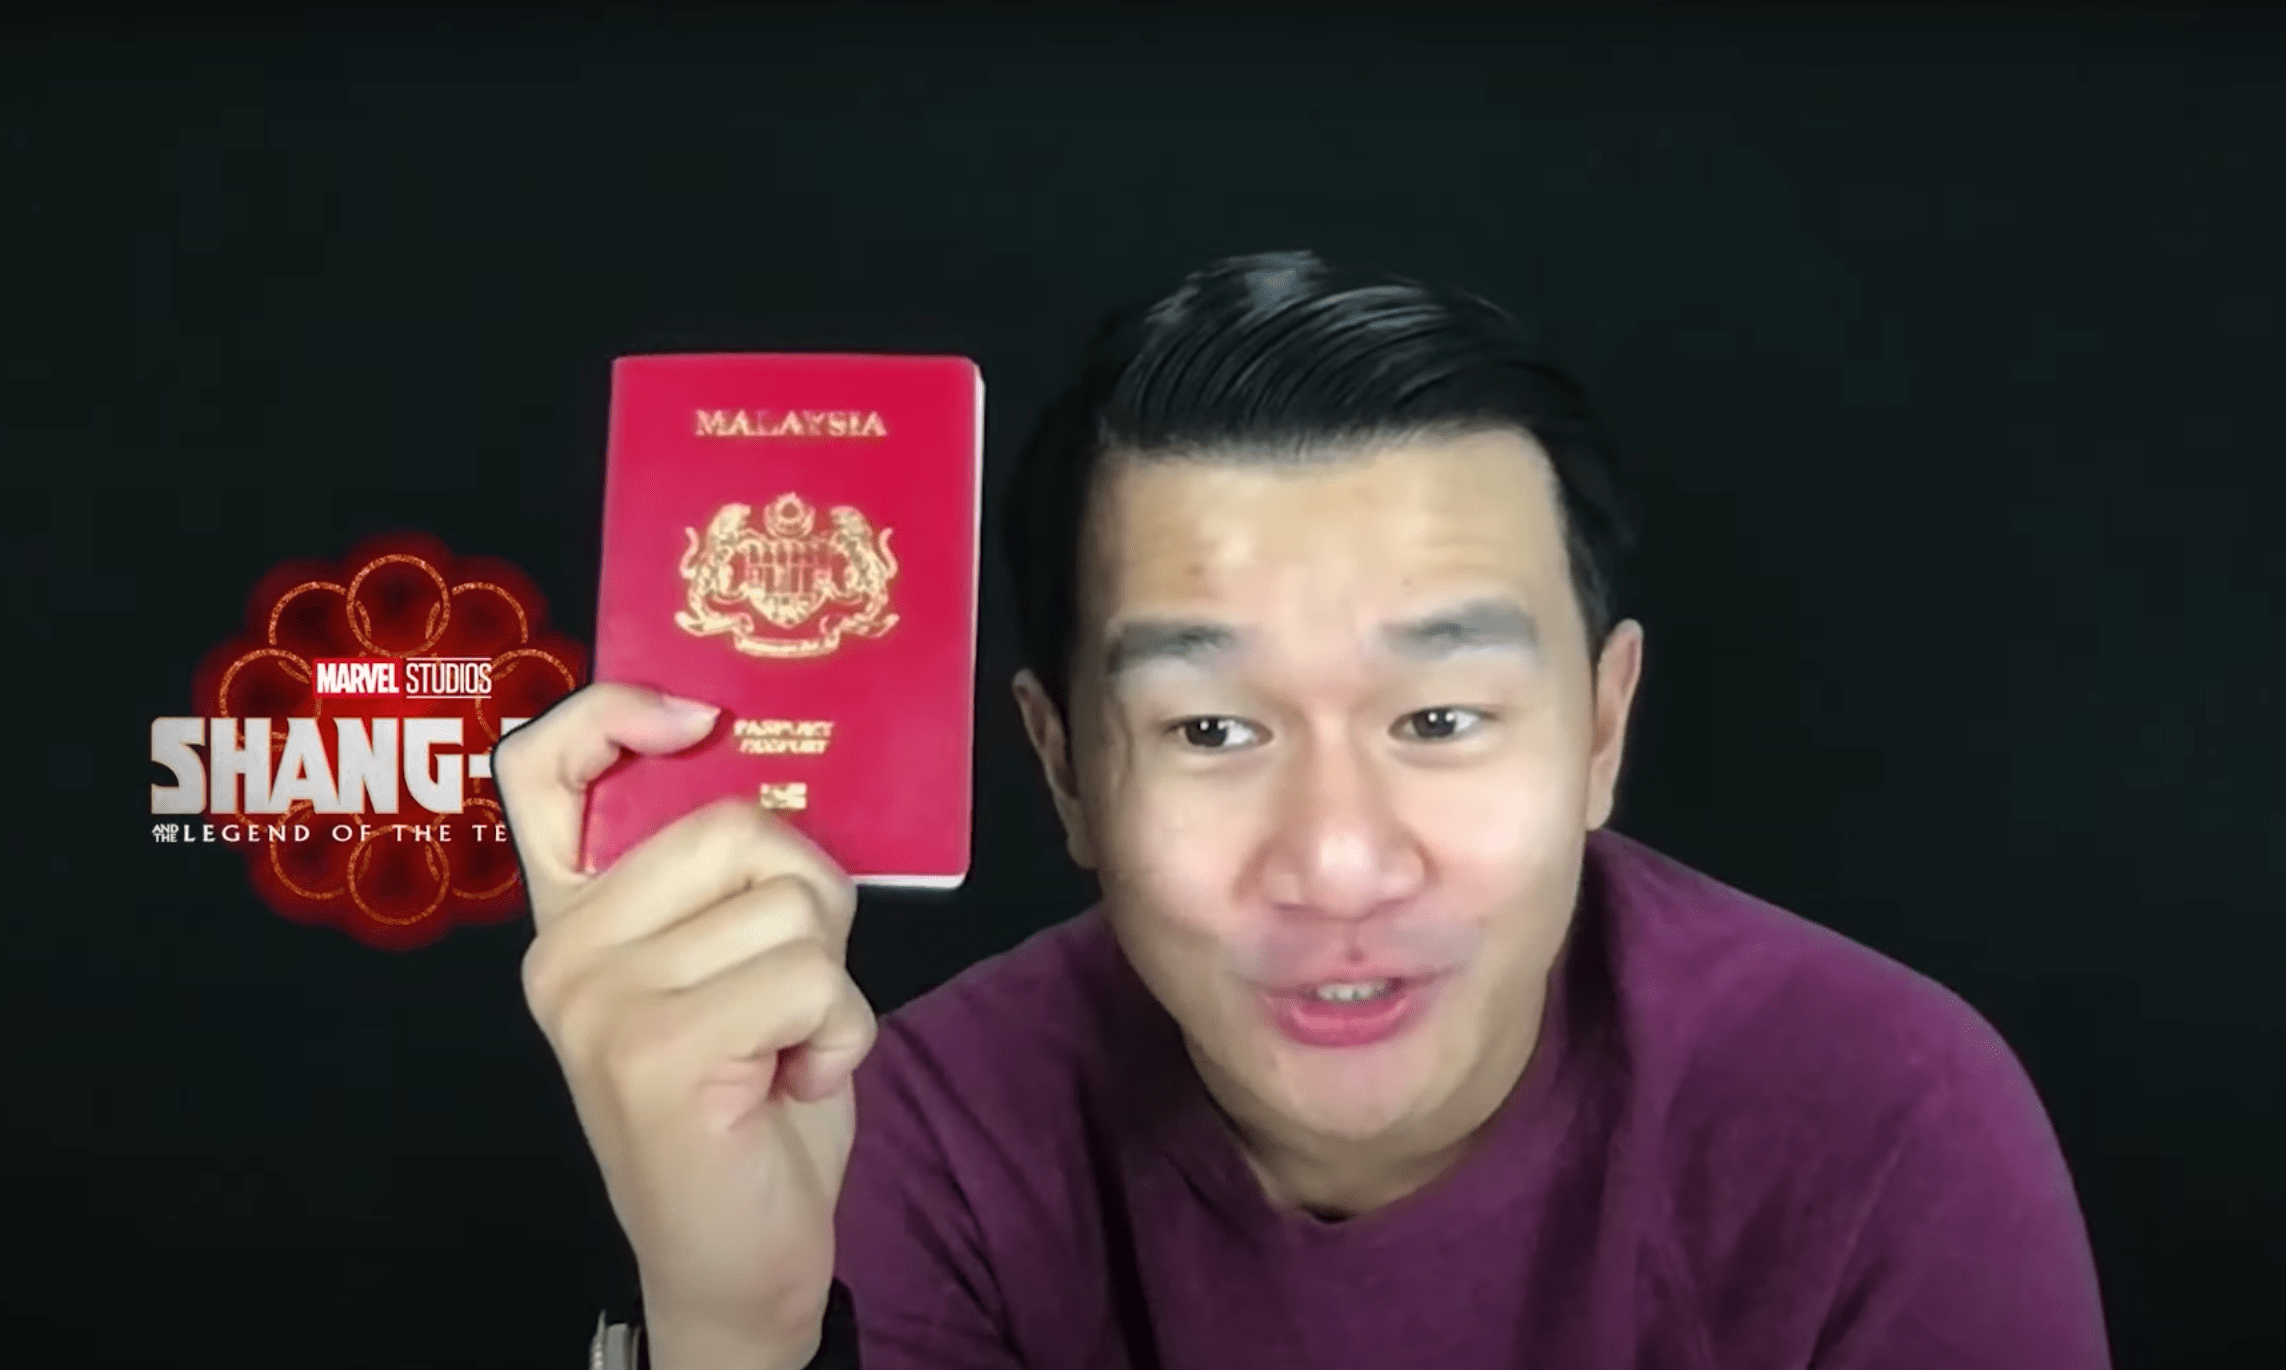 Ronny Chieng facts - Malaysian